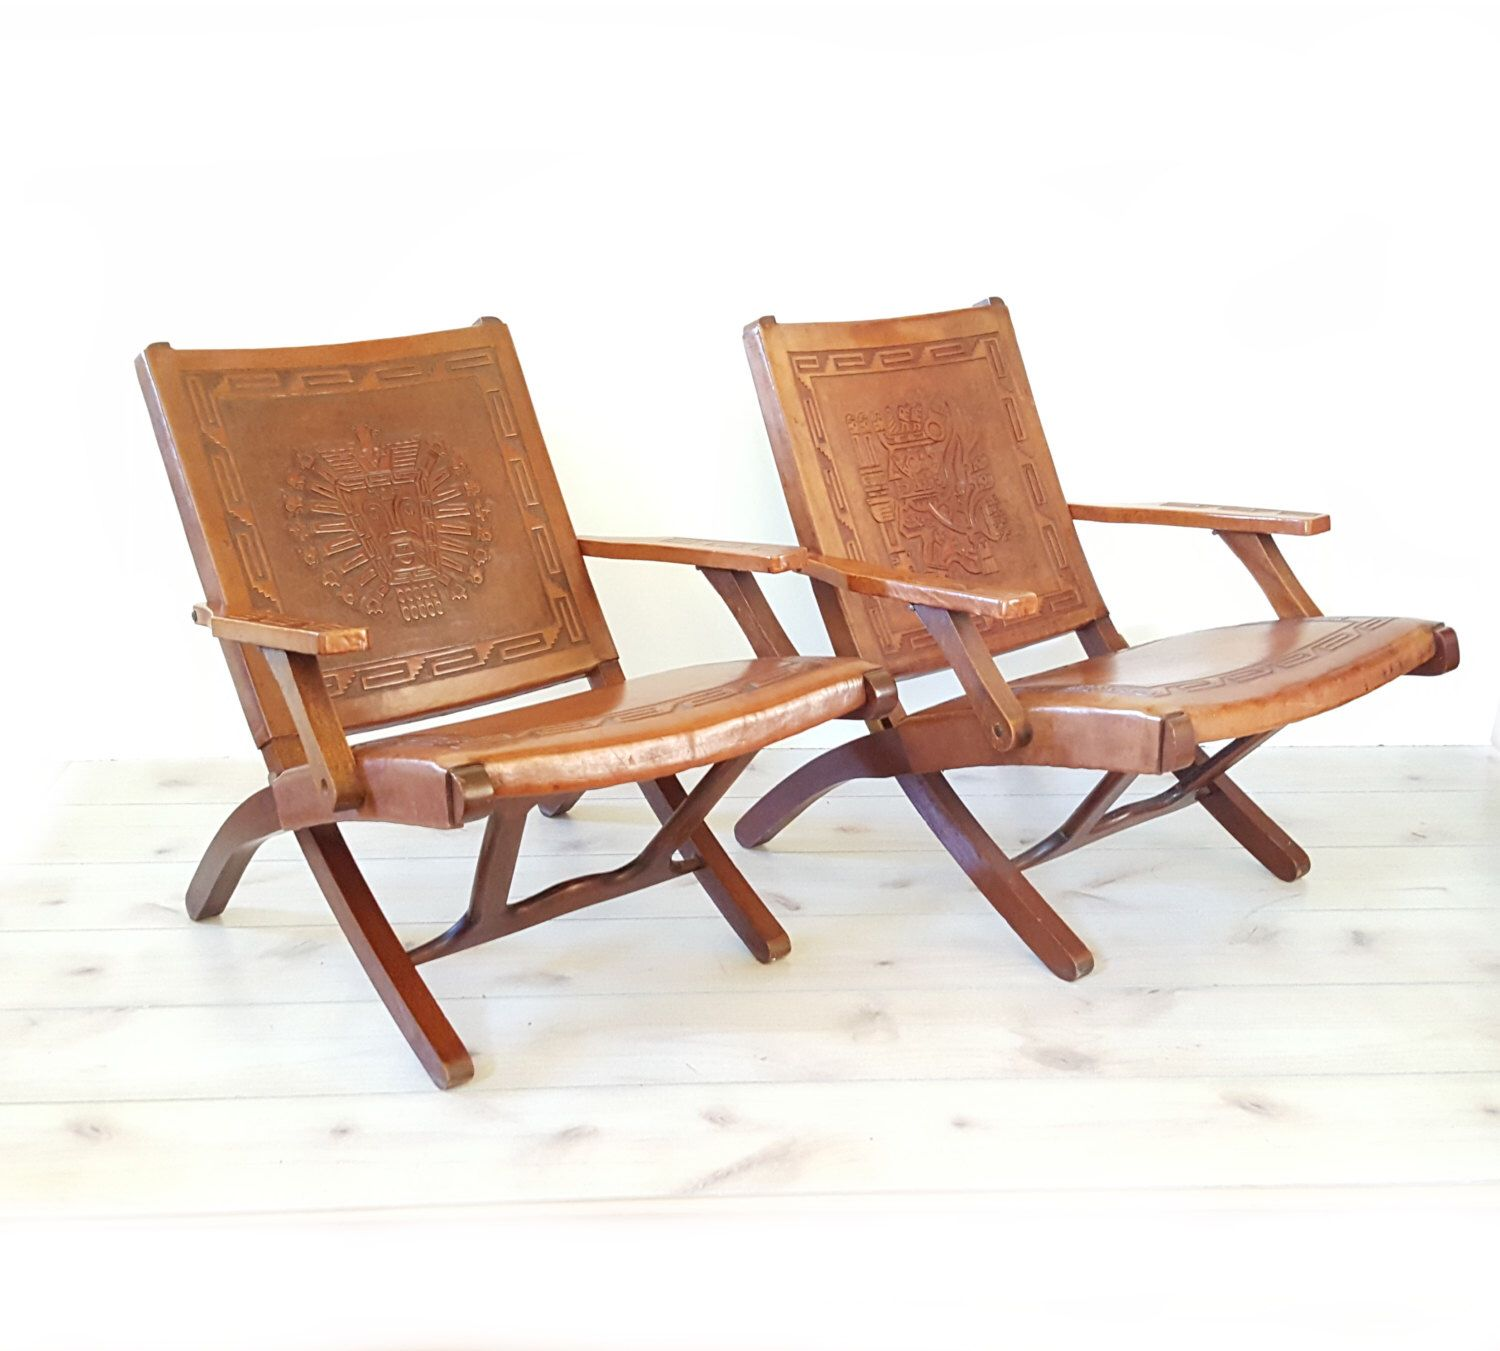 Astonishing Four Folding Peruvian Leather Chairs Vintage Mid Century Andrewgaddart Wooden Chair Designs For Living Room Andrewgaddartcom